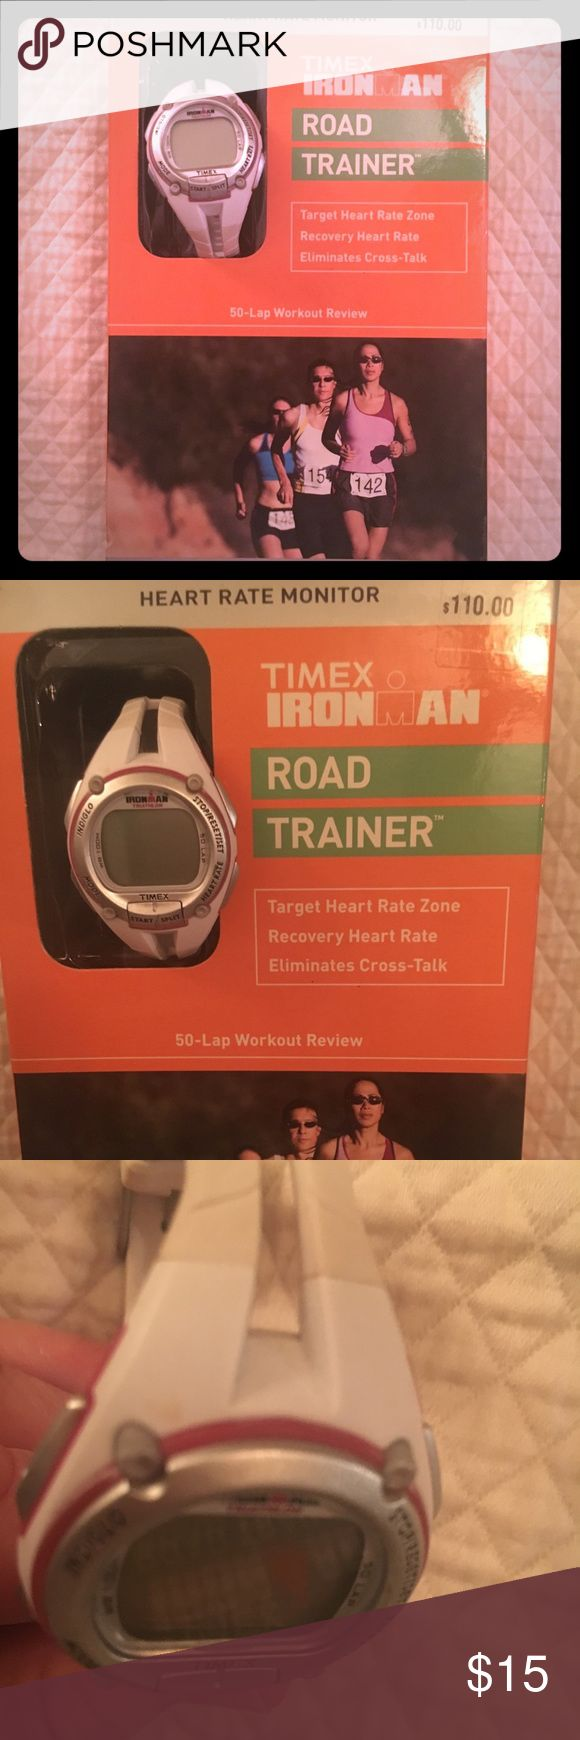 Timex Ironman RoadTrainer heart rate monitor+watch Timed Ironman Road Trainer running watch plus heart rate monitor strap. Still have box. Watch and monitor chest belt need batteries. Watch is women's size with smaller face white and cream color with pink:purple accents. Note there is a mark at top left and some scuffs. Priced accordingly. Please see pics timex Ironman Other #runningwatch